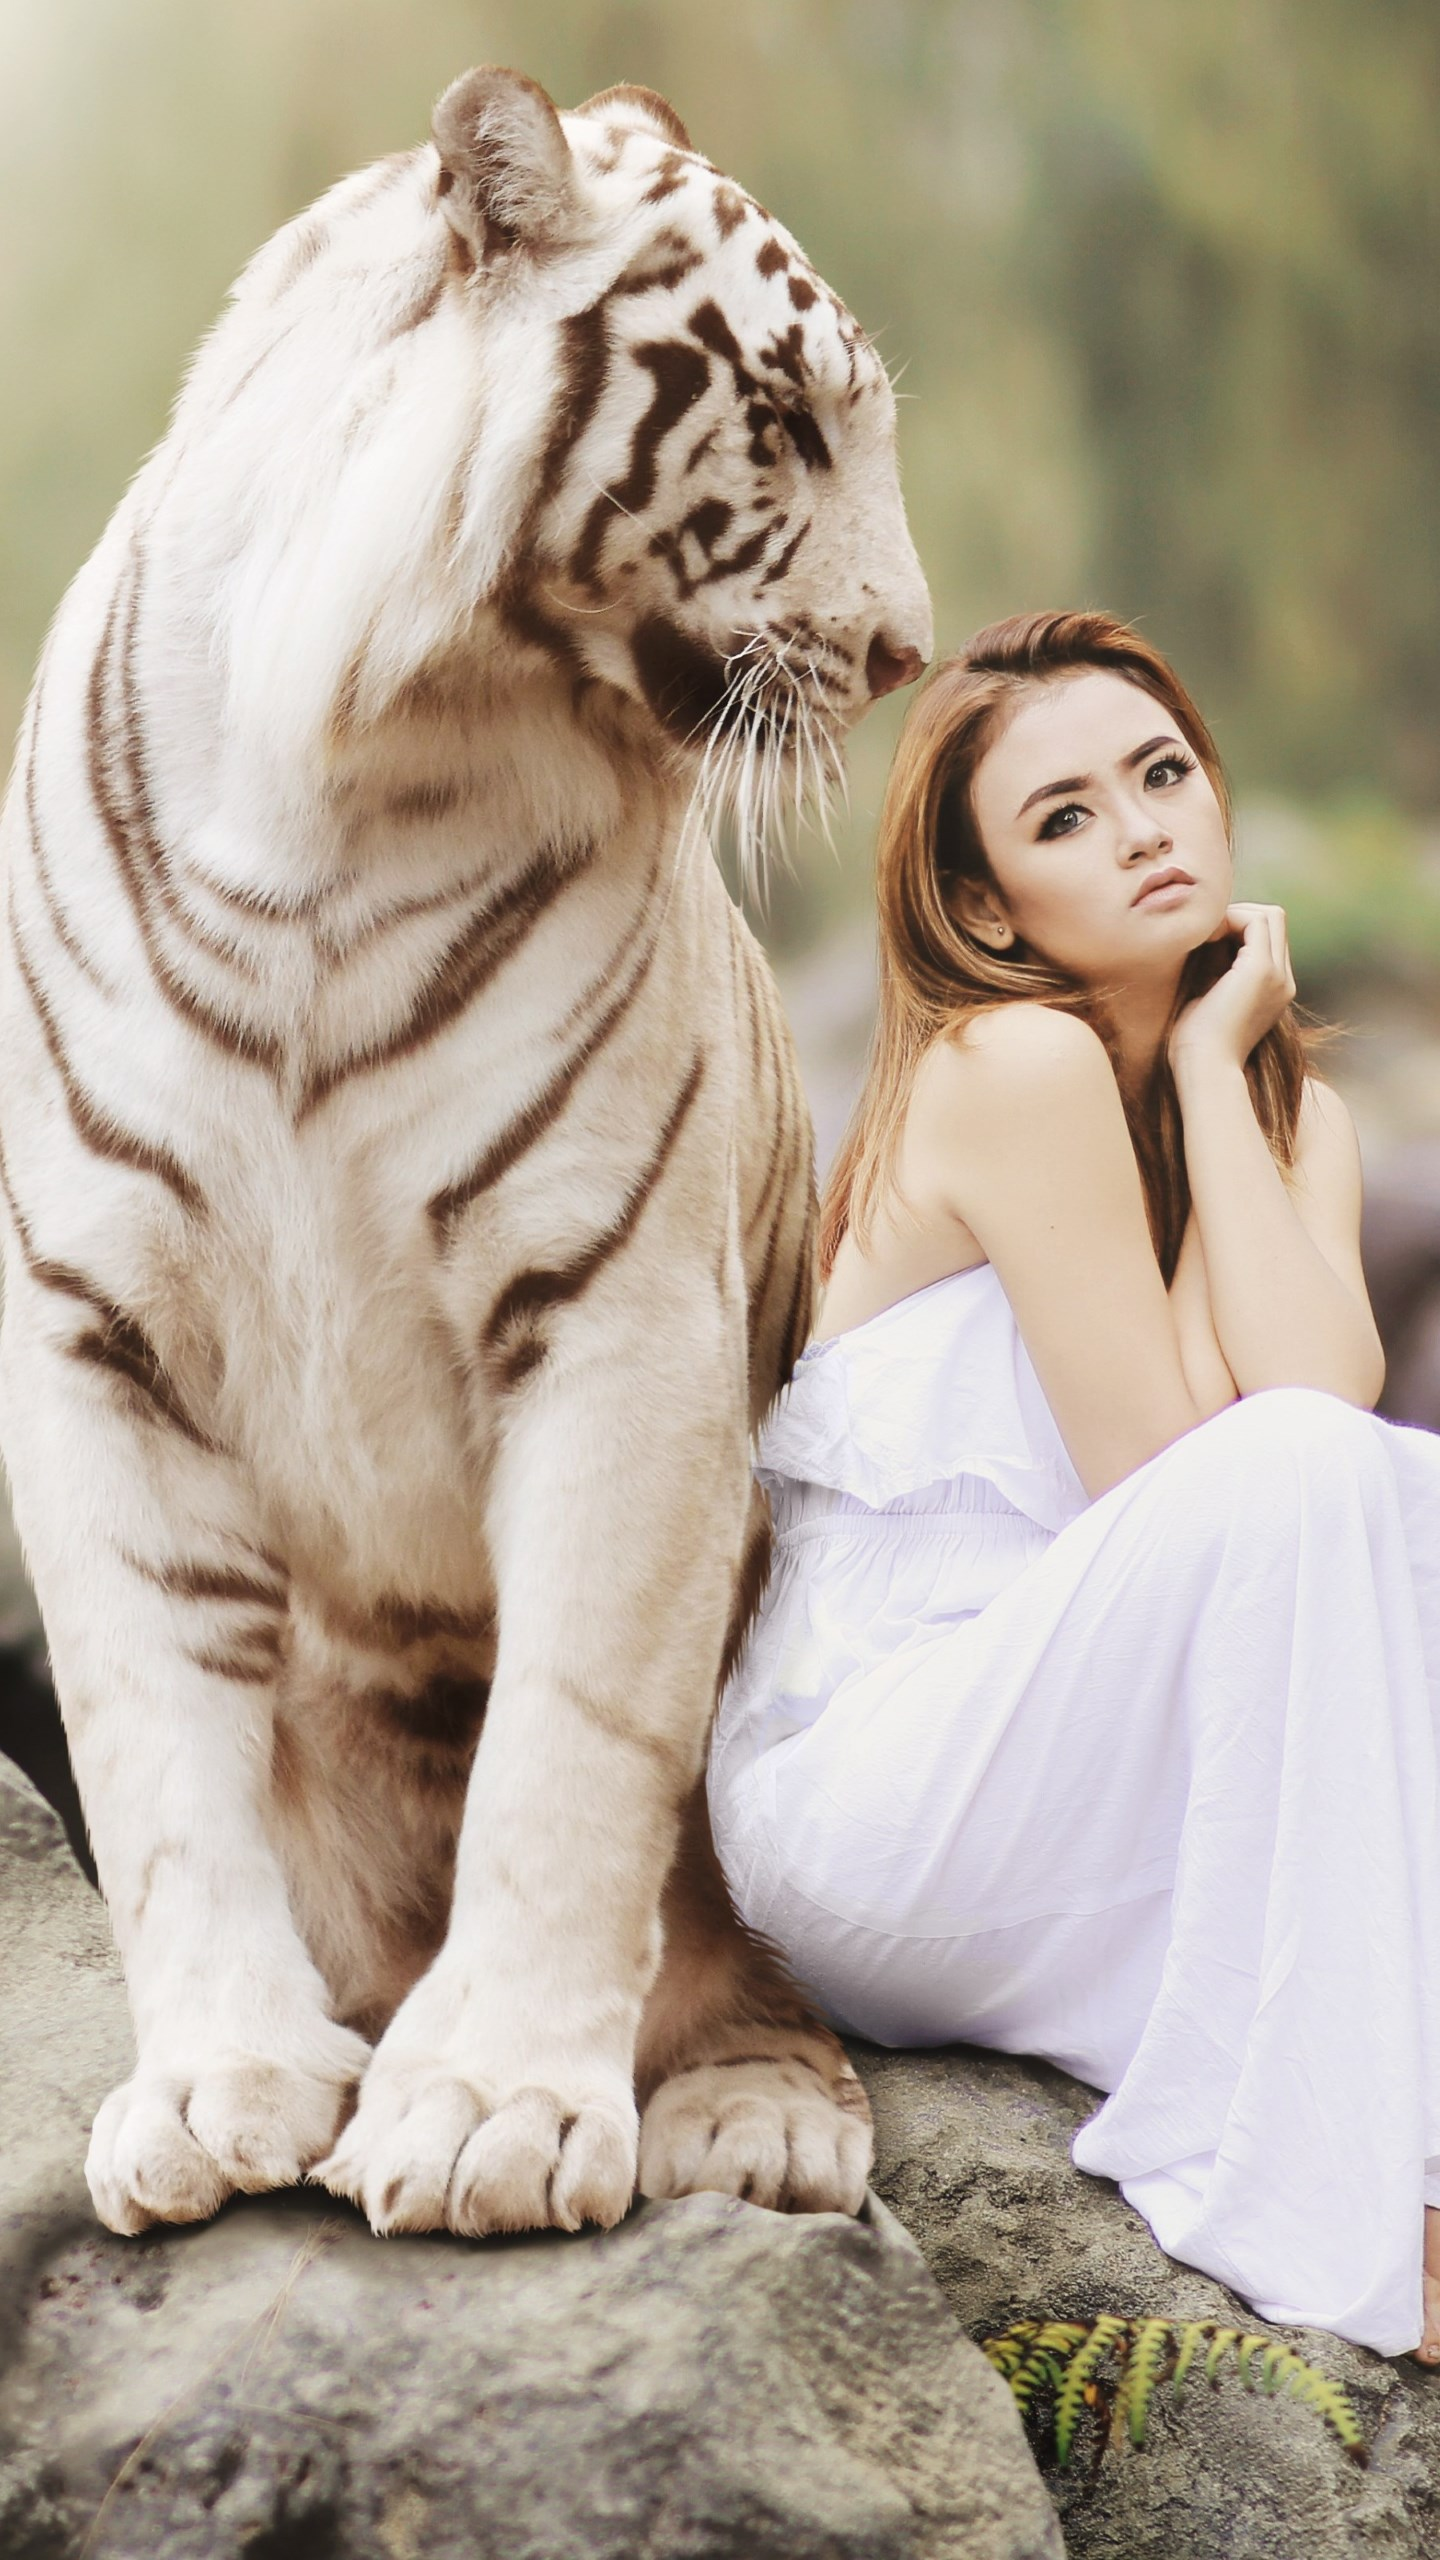 Bengal tiger and a beautiful girl | 1440x2560 wallpaper